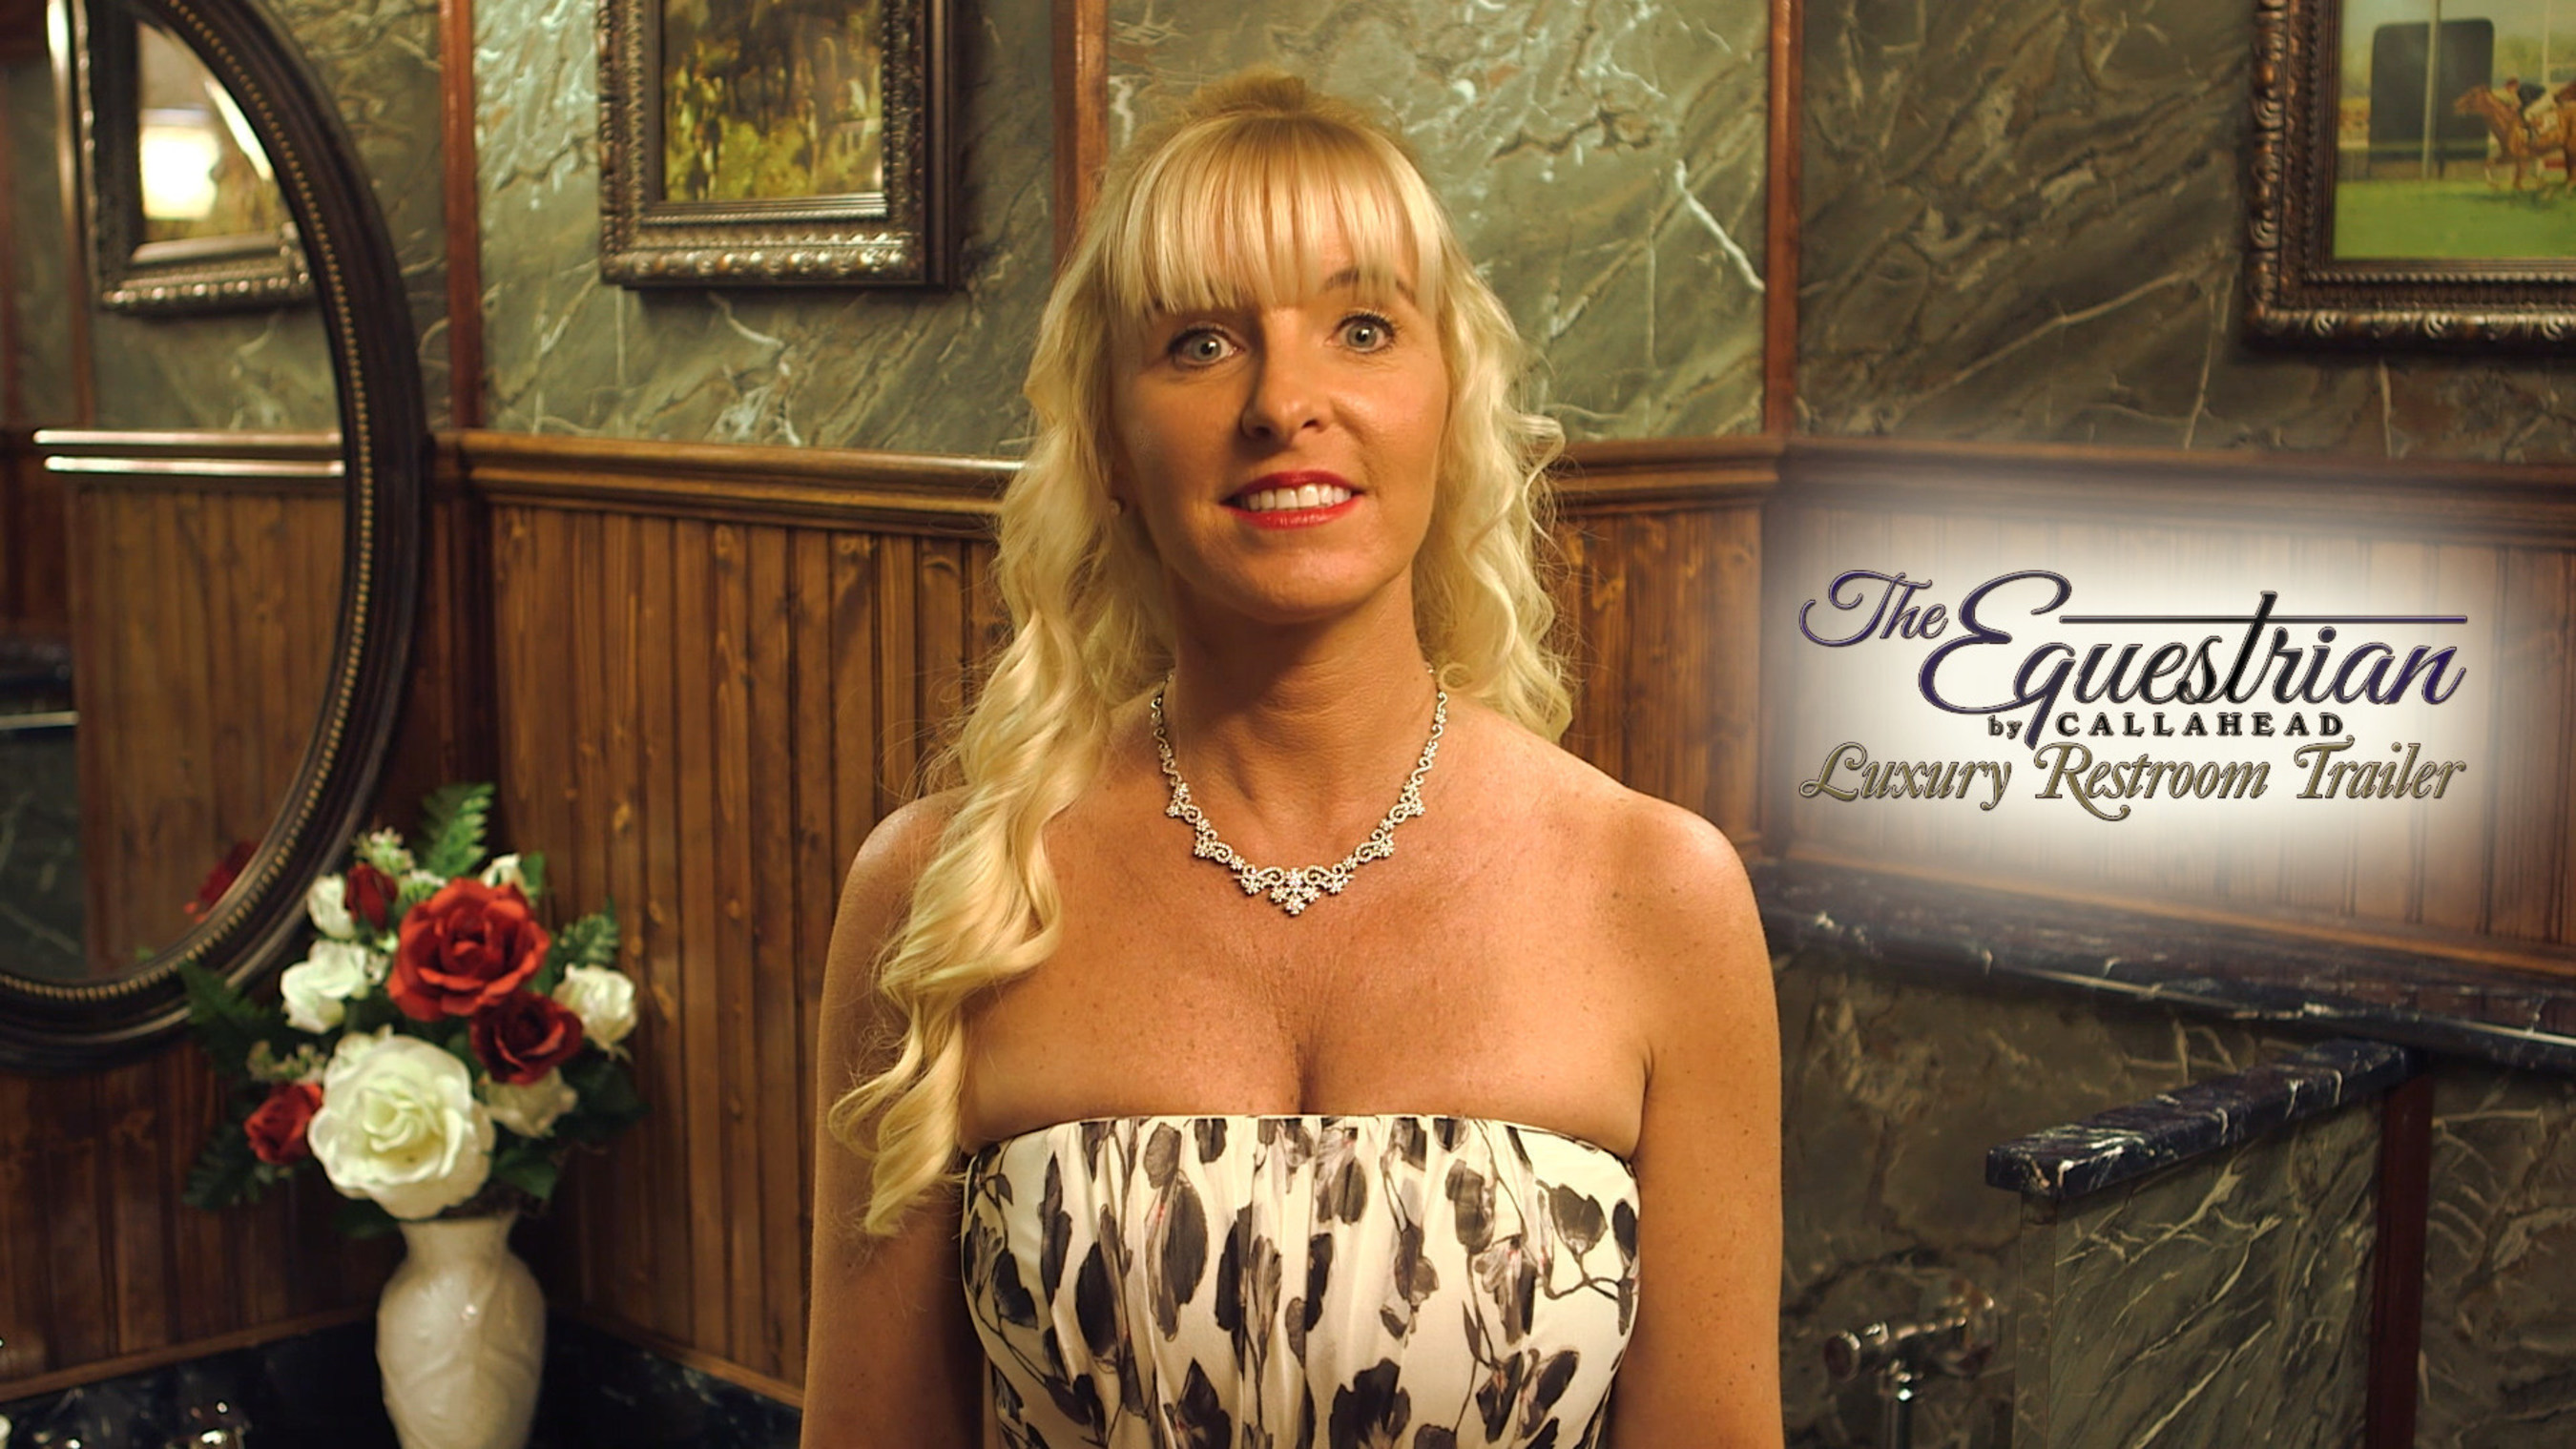 Kimberly Howard inside The Equestrian Luxury Restroom Trailer by CALLAHEAD Corp.